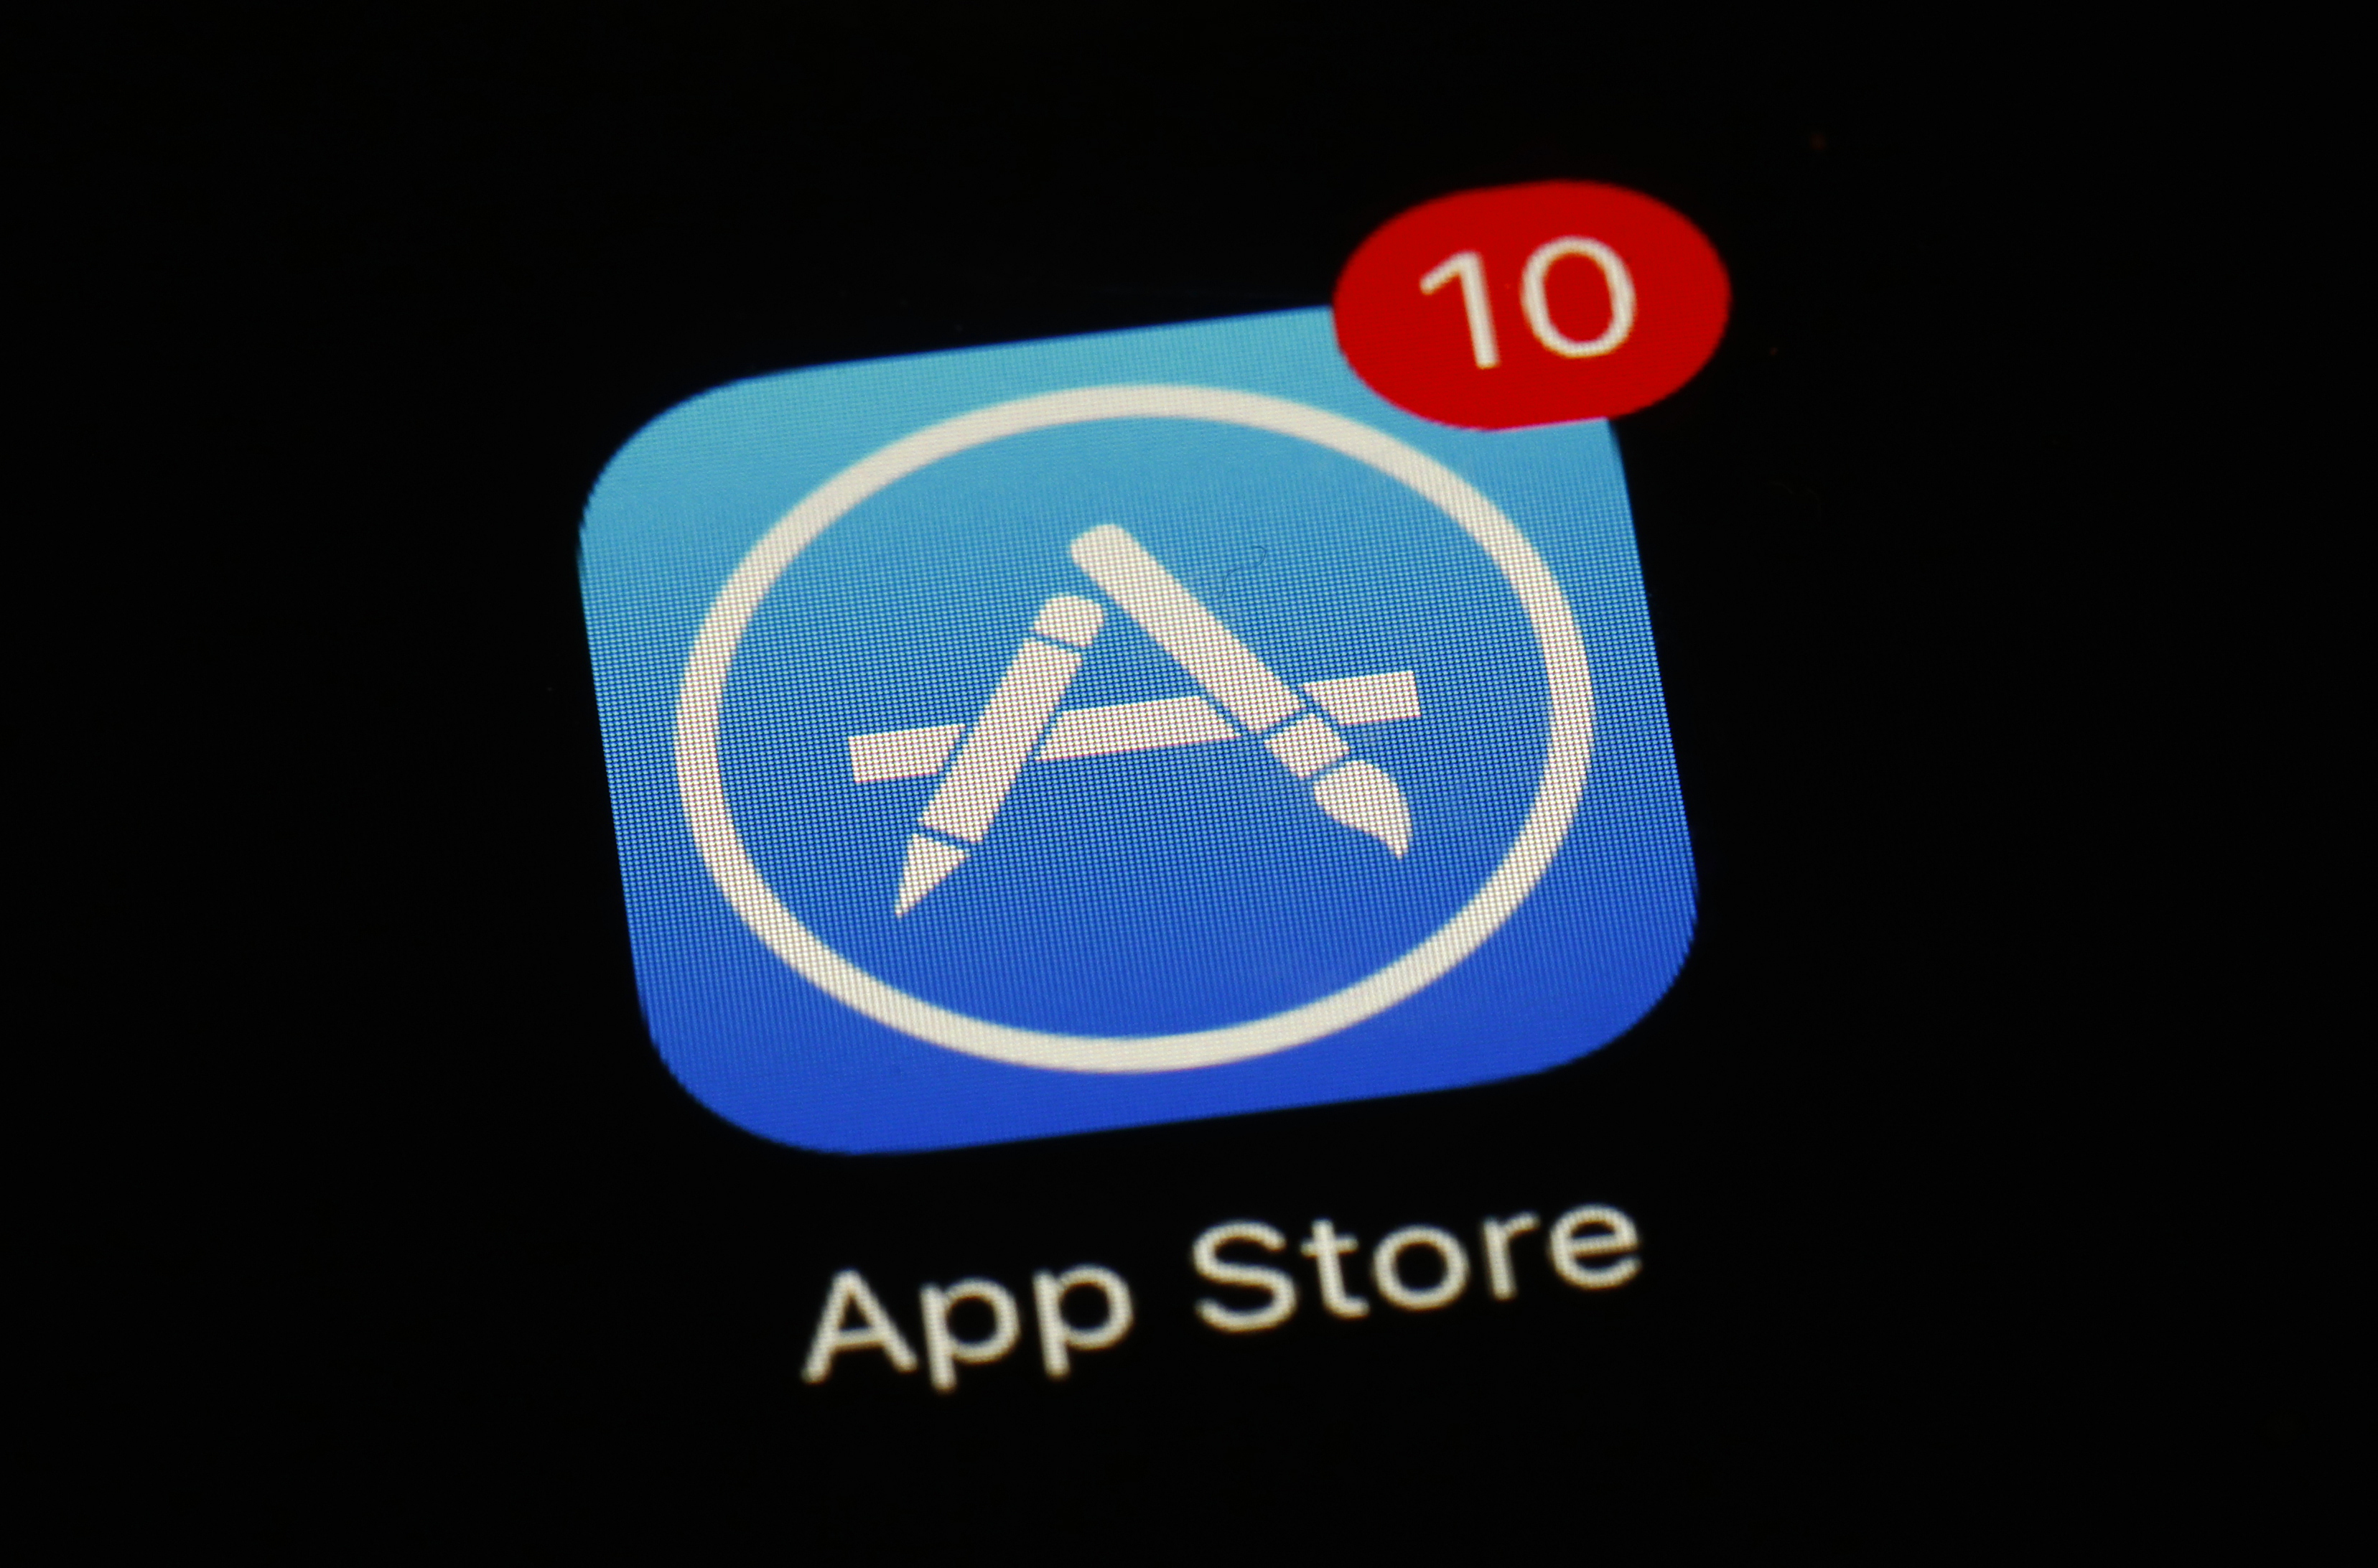 This March 19, 2018, file photo shows Apple's App Store logo on a screen in Baltimore.